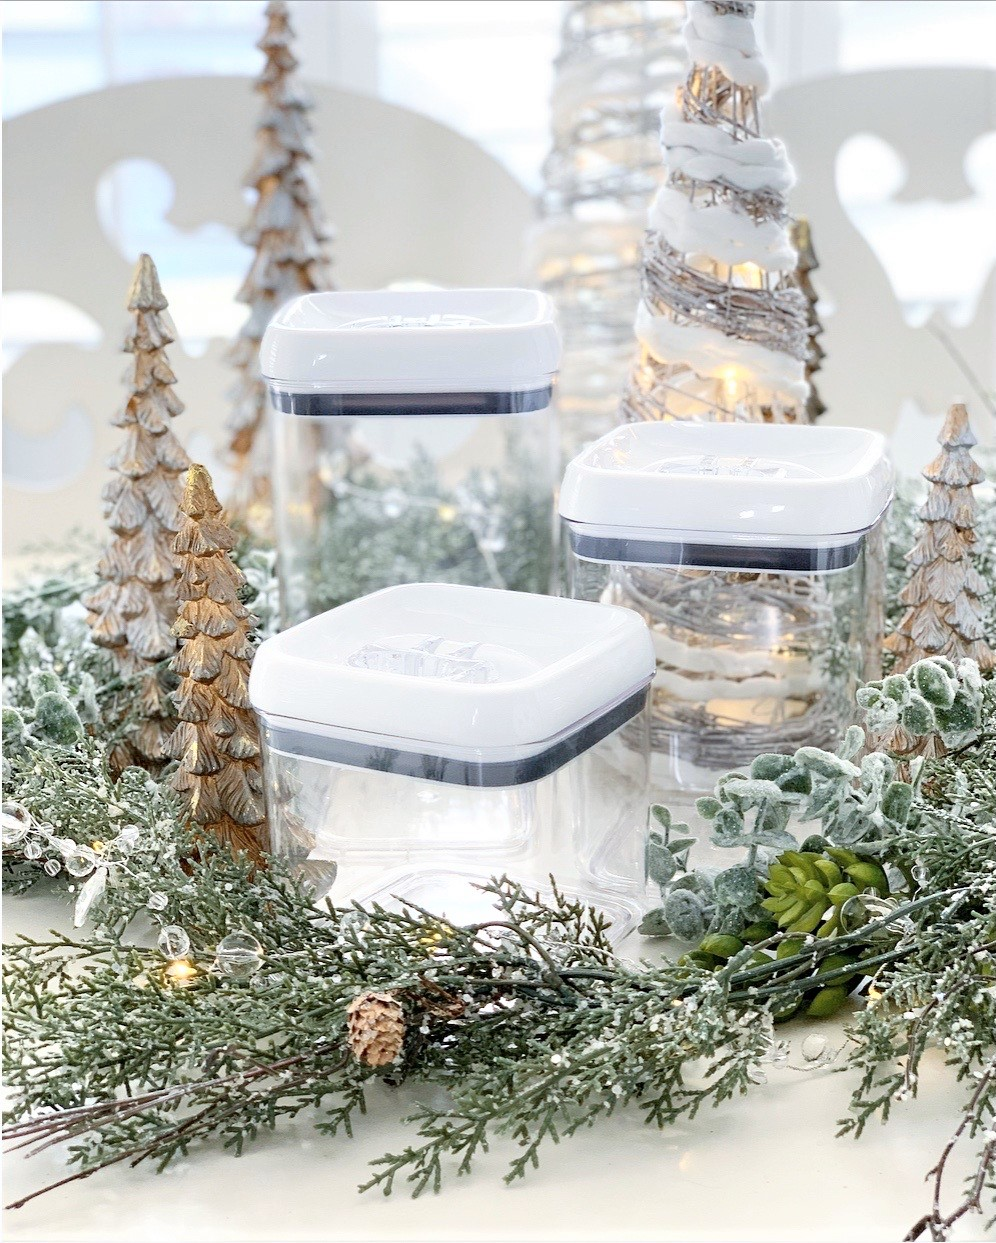 Better Homes & Gardens Flip-Tite 4 Pack Square Container Set